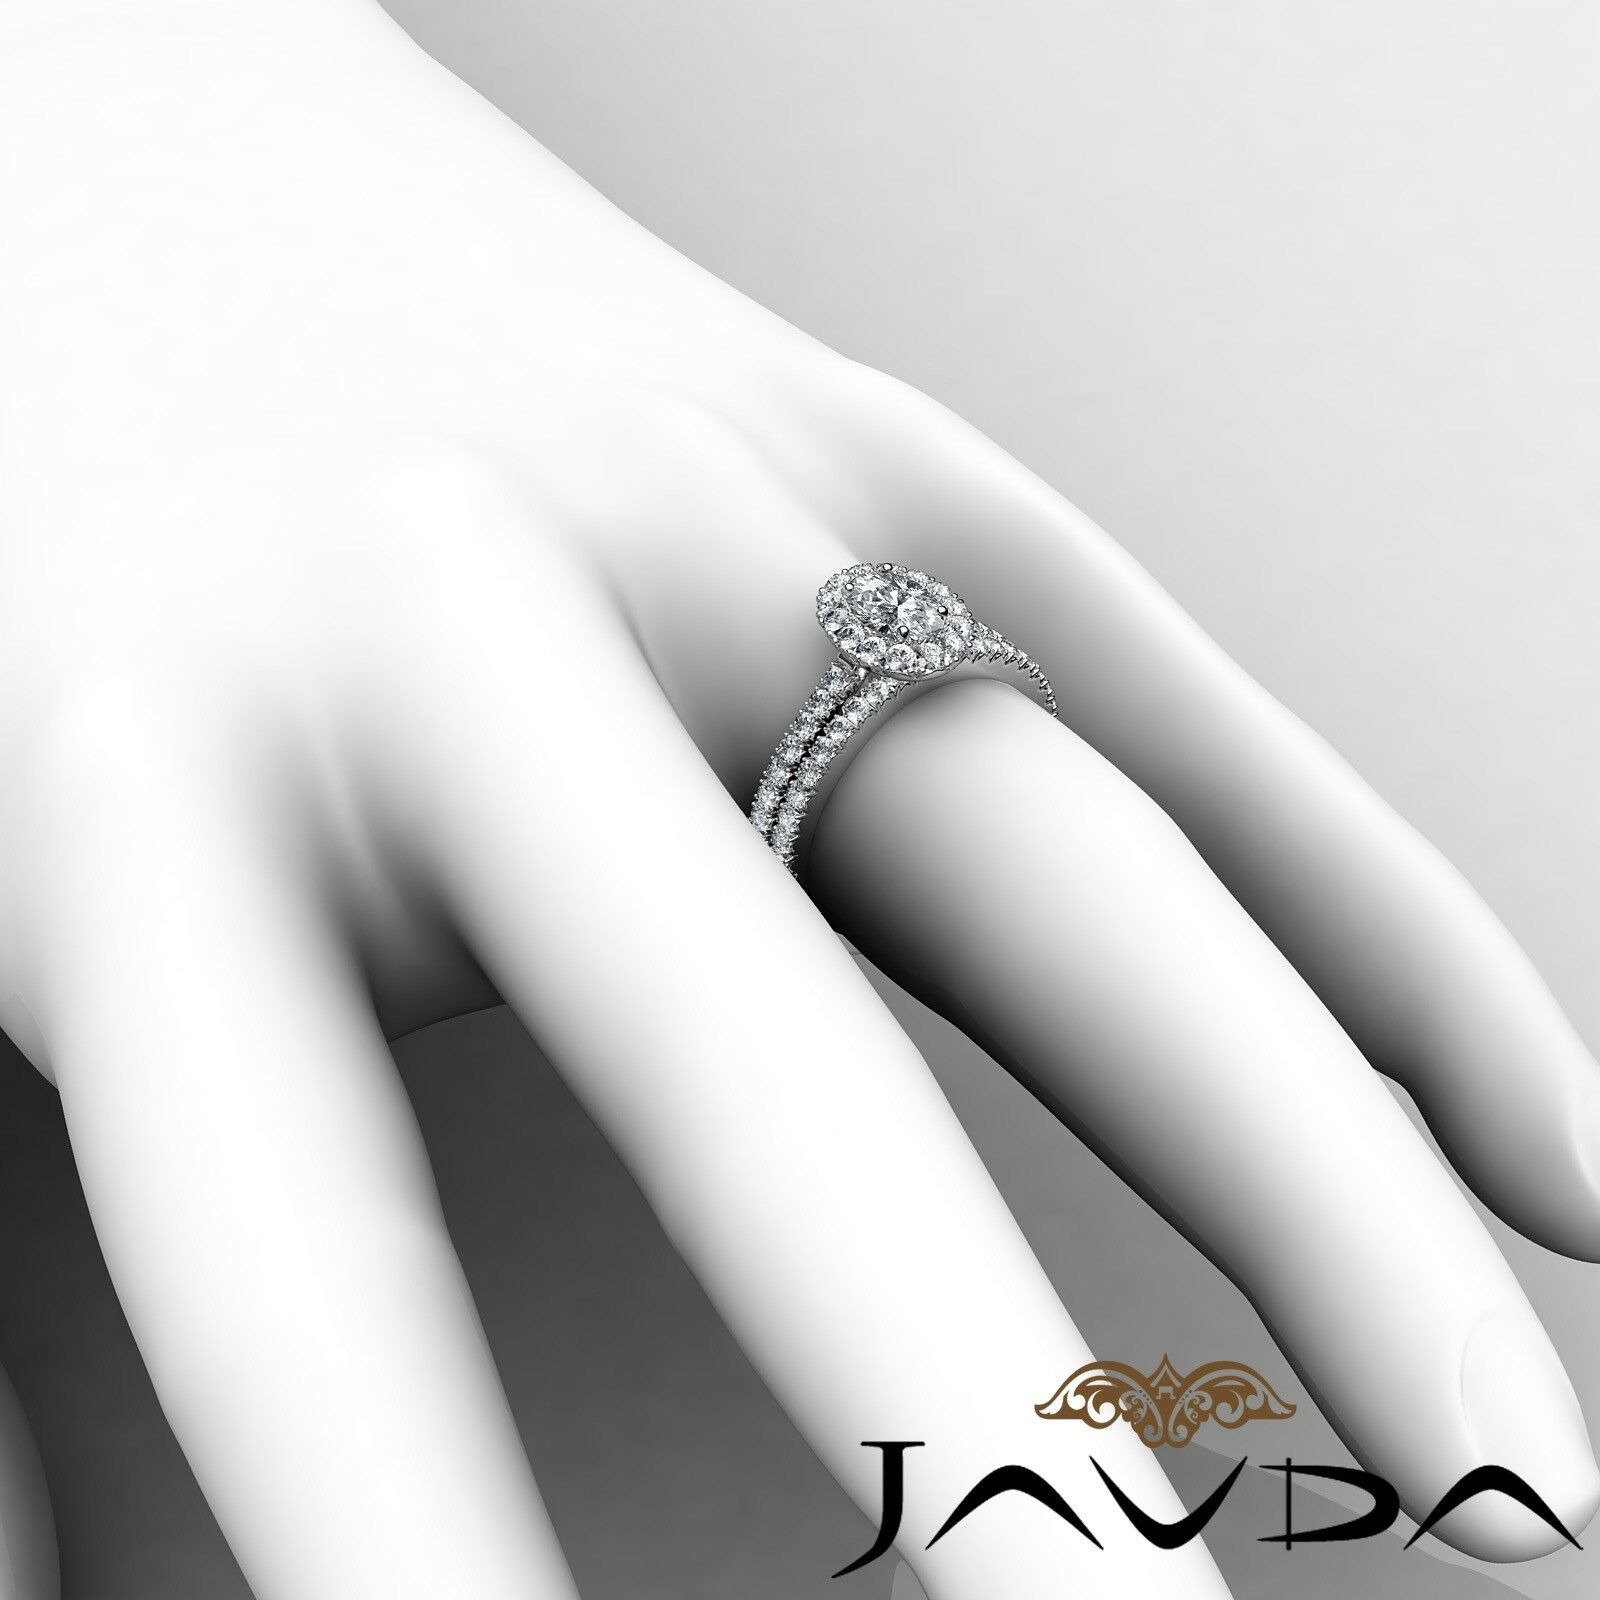 2.21ctw Halo Bridal French Pave Oval Diamond Engagement Ring GIA F-VVS2 W Gold 6